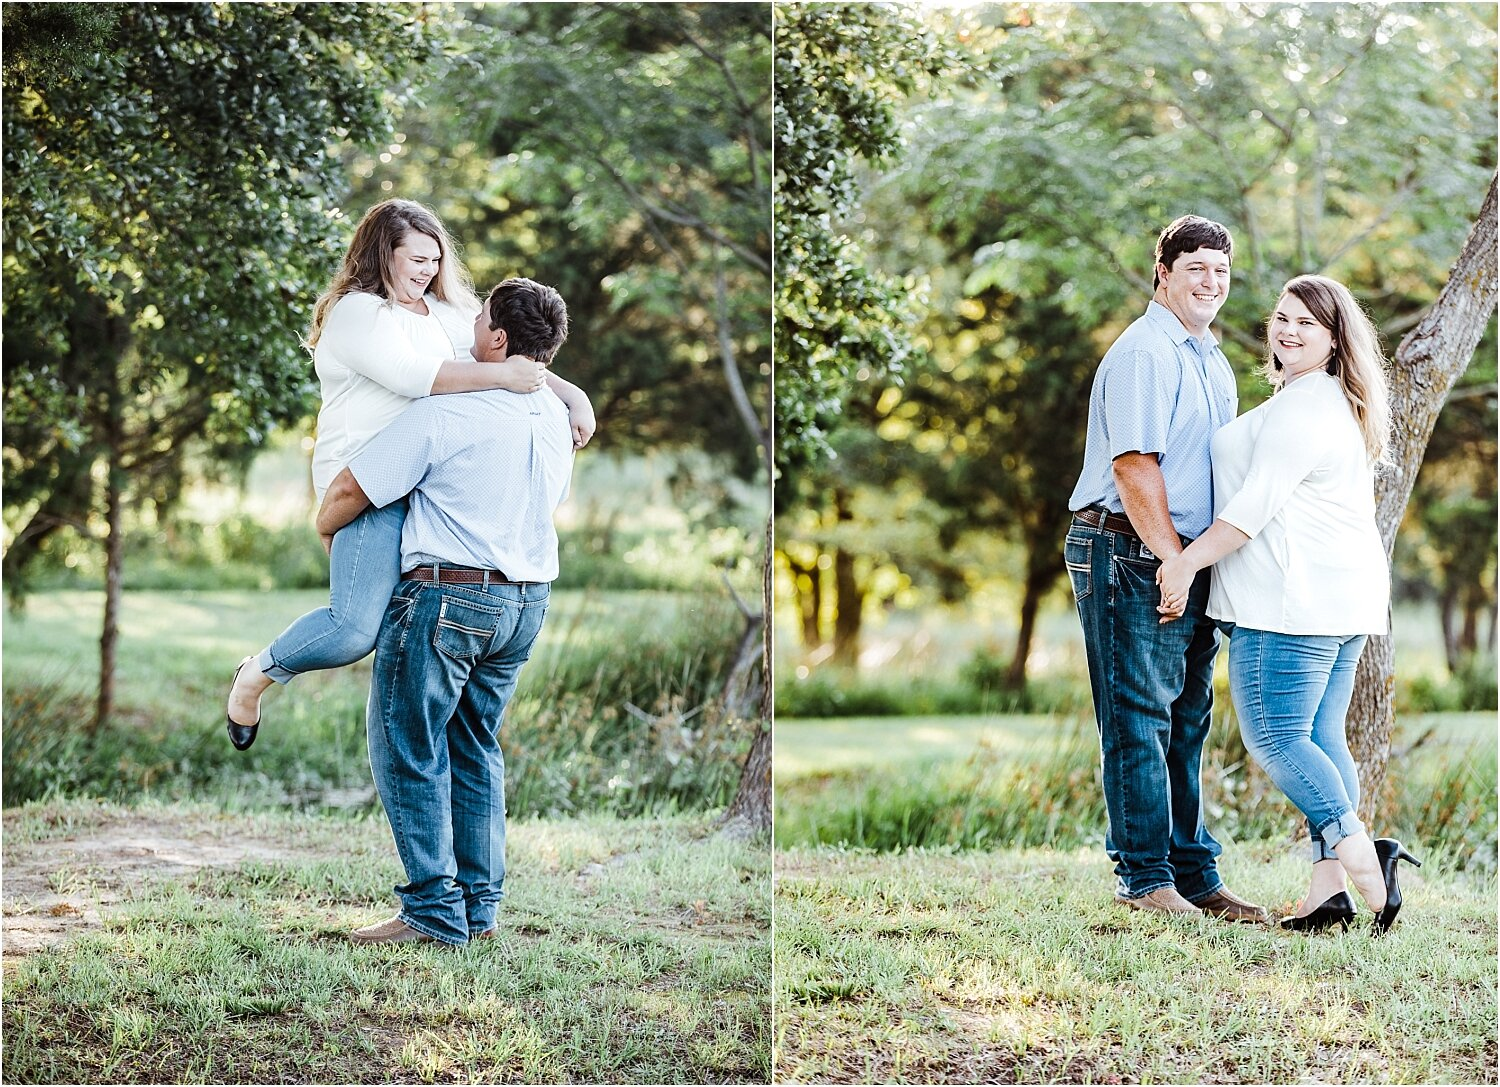 Cozy outdoor engagement photos with lifts and spins